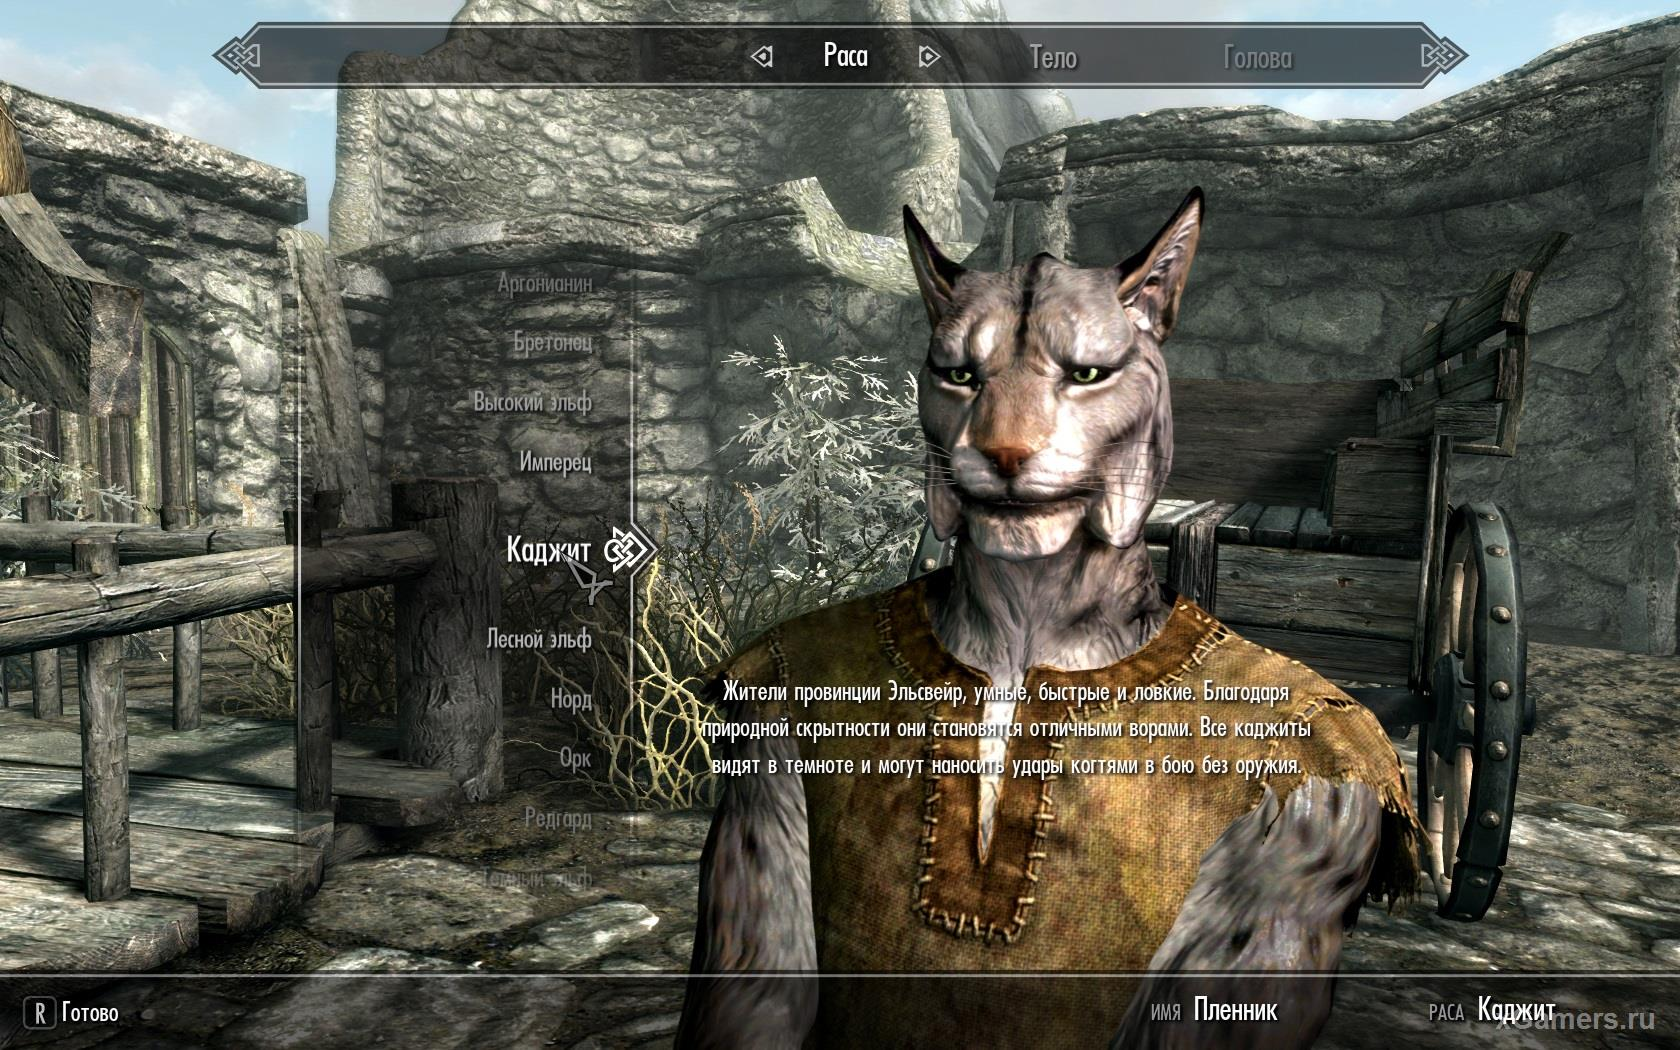 Race - Khajiit in Skyrim. Clever, mobile and fast crooks